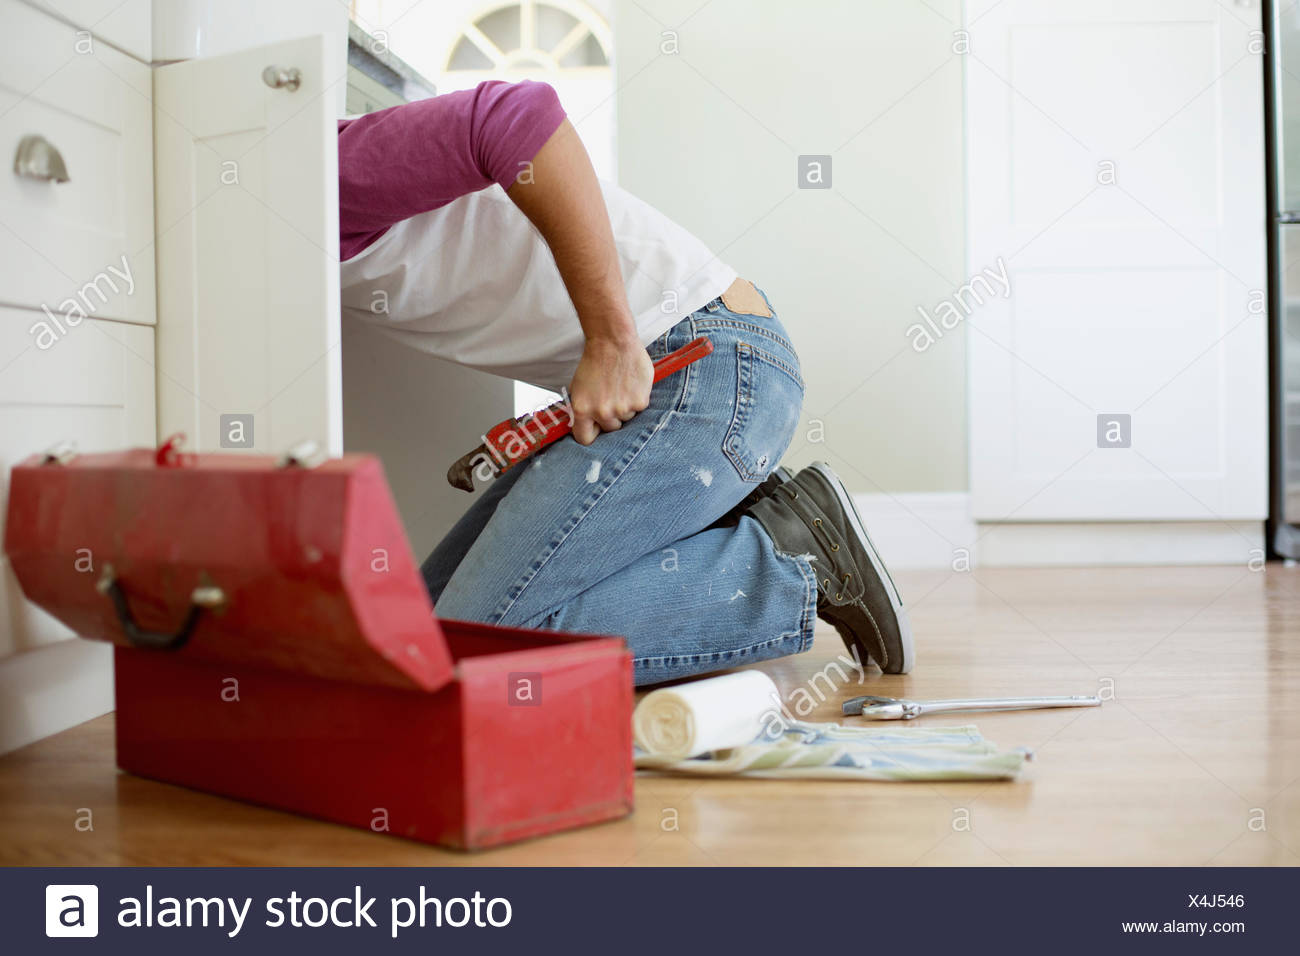 mid adult homeowner repairing plumbing under the sink - Stock Image